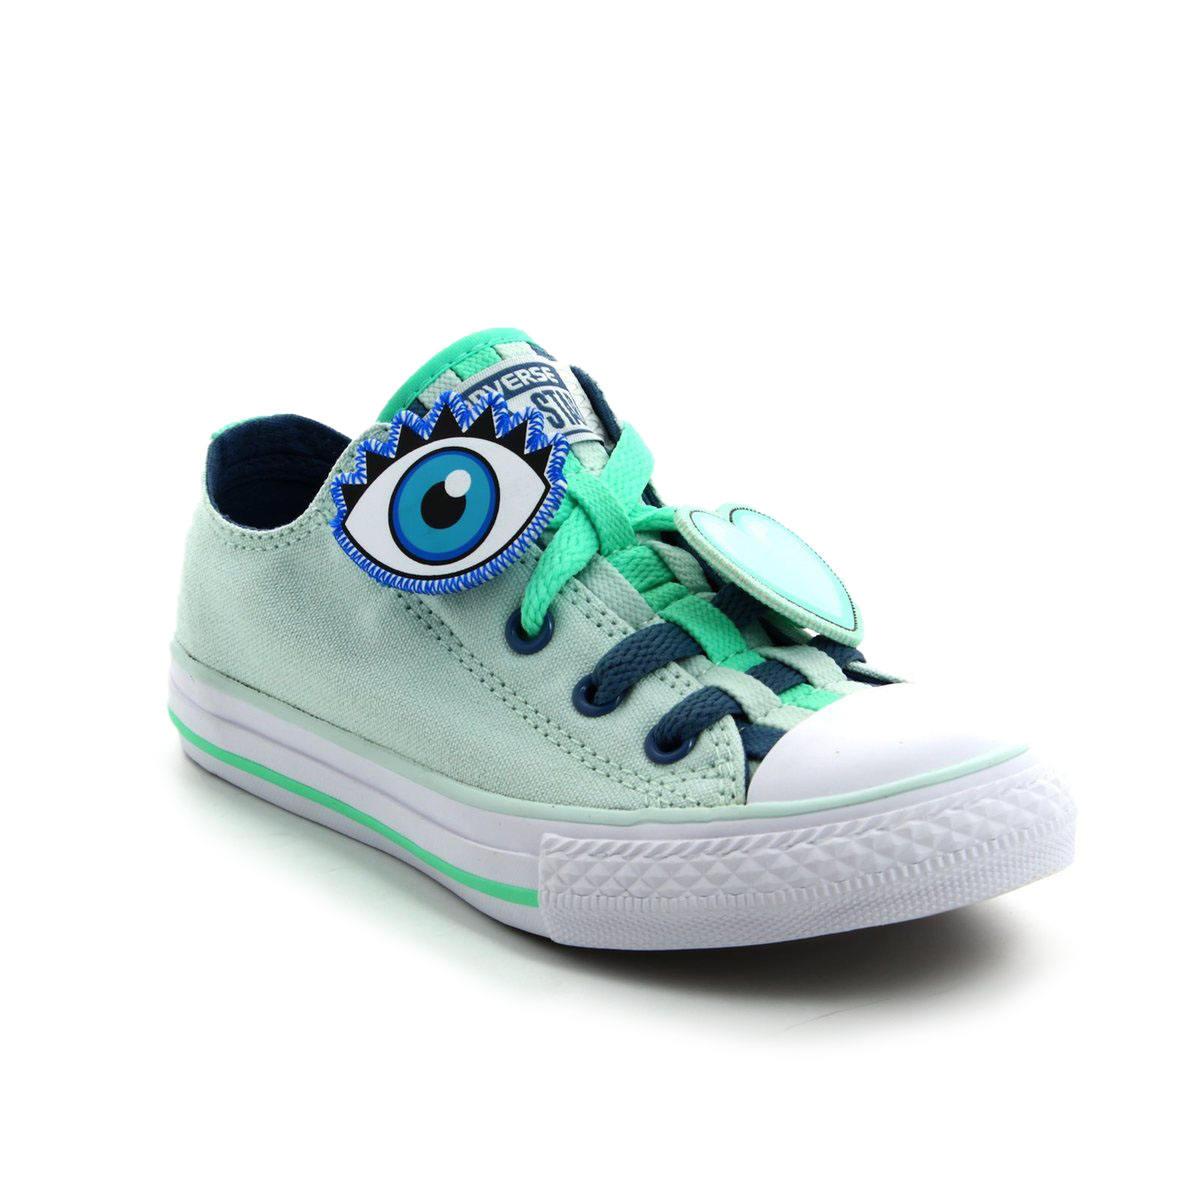 da29ac1c8f 656043c Chuck Taylor All Star Loopholes Ox at Begg Shoes & Bags